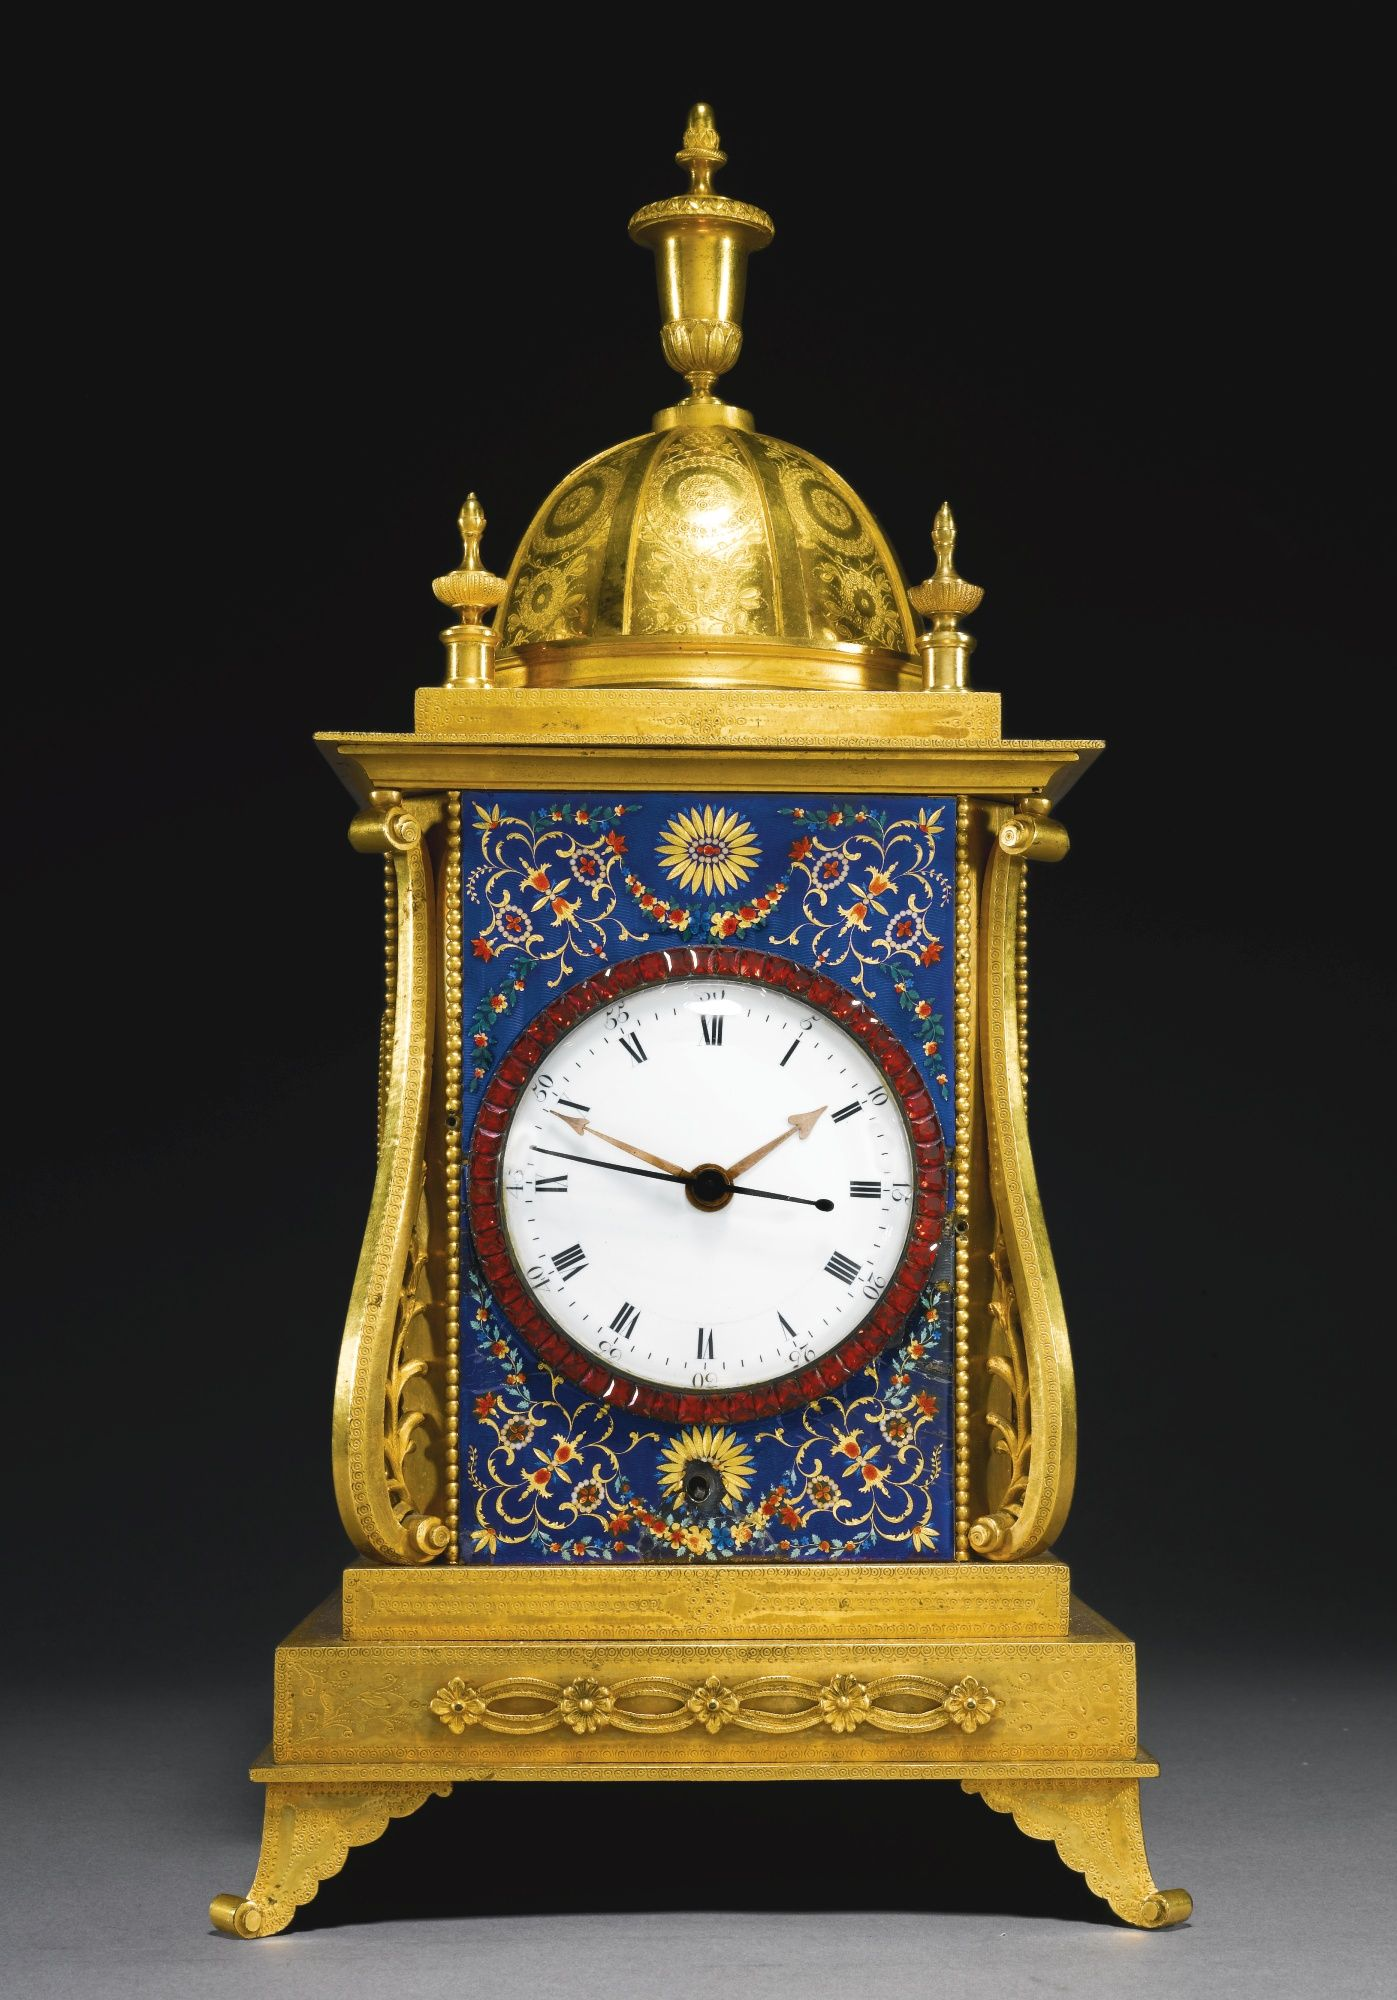 A George III Ormolu And Enamel Quarter Striking Musical Table Clock For The  Chinese Market, John Mottram, London, Circa 1780 | Lot | Sothebyu0027s |  Pinterest ...